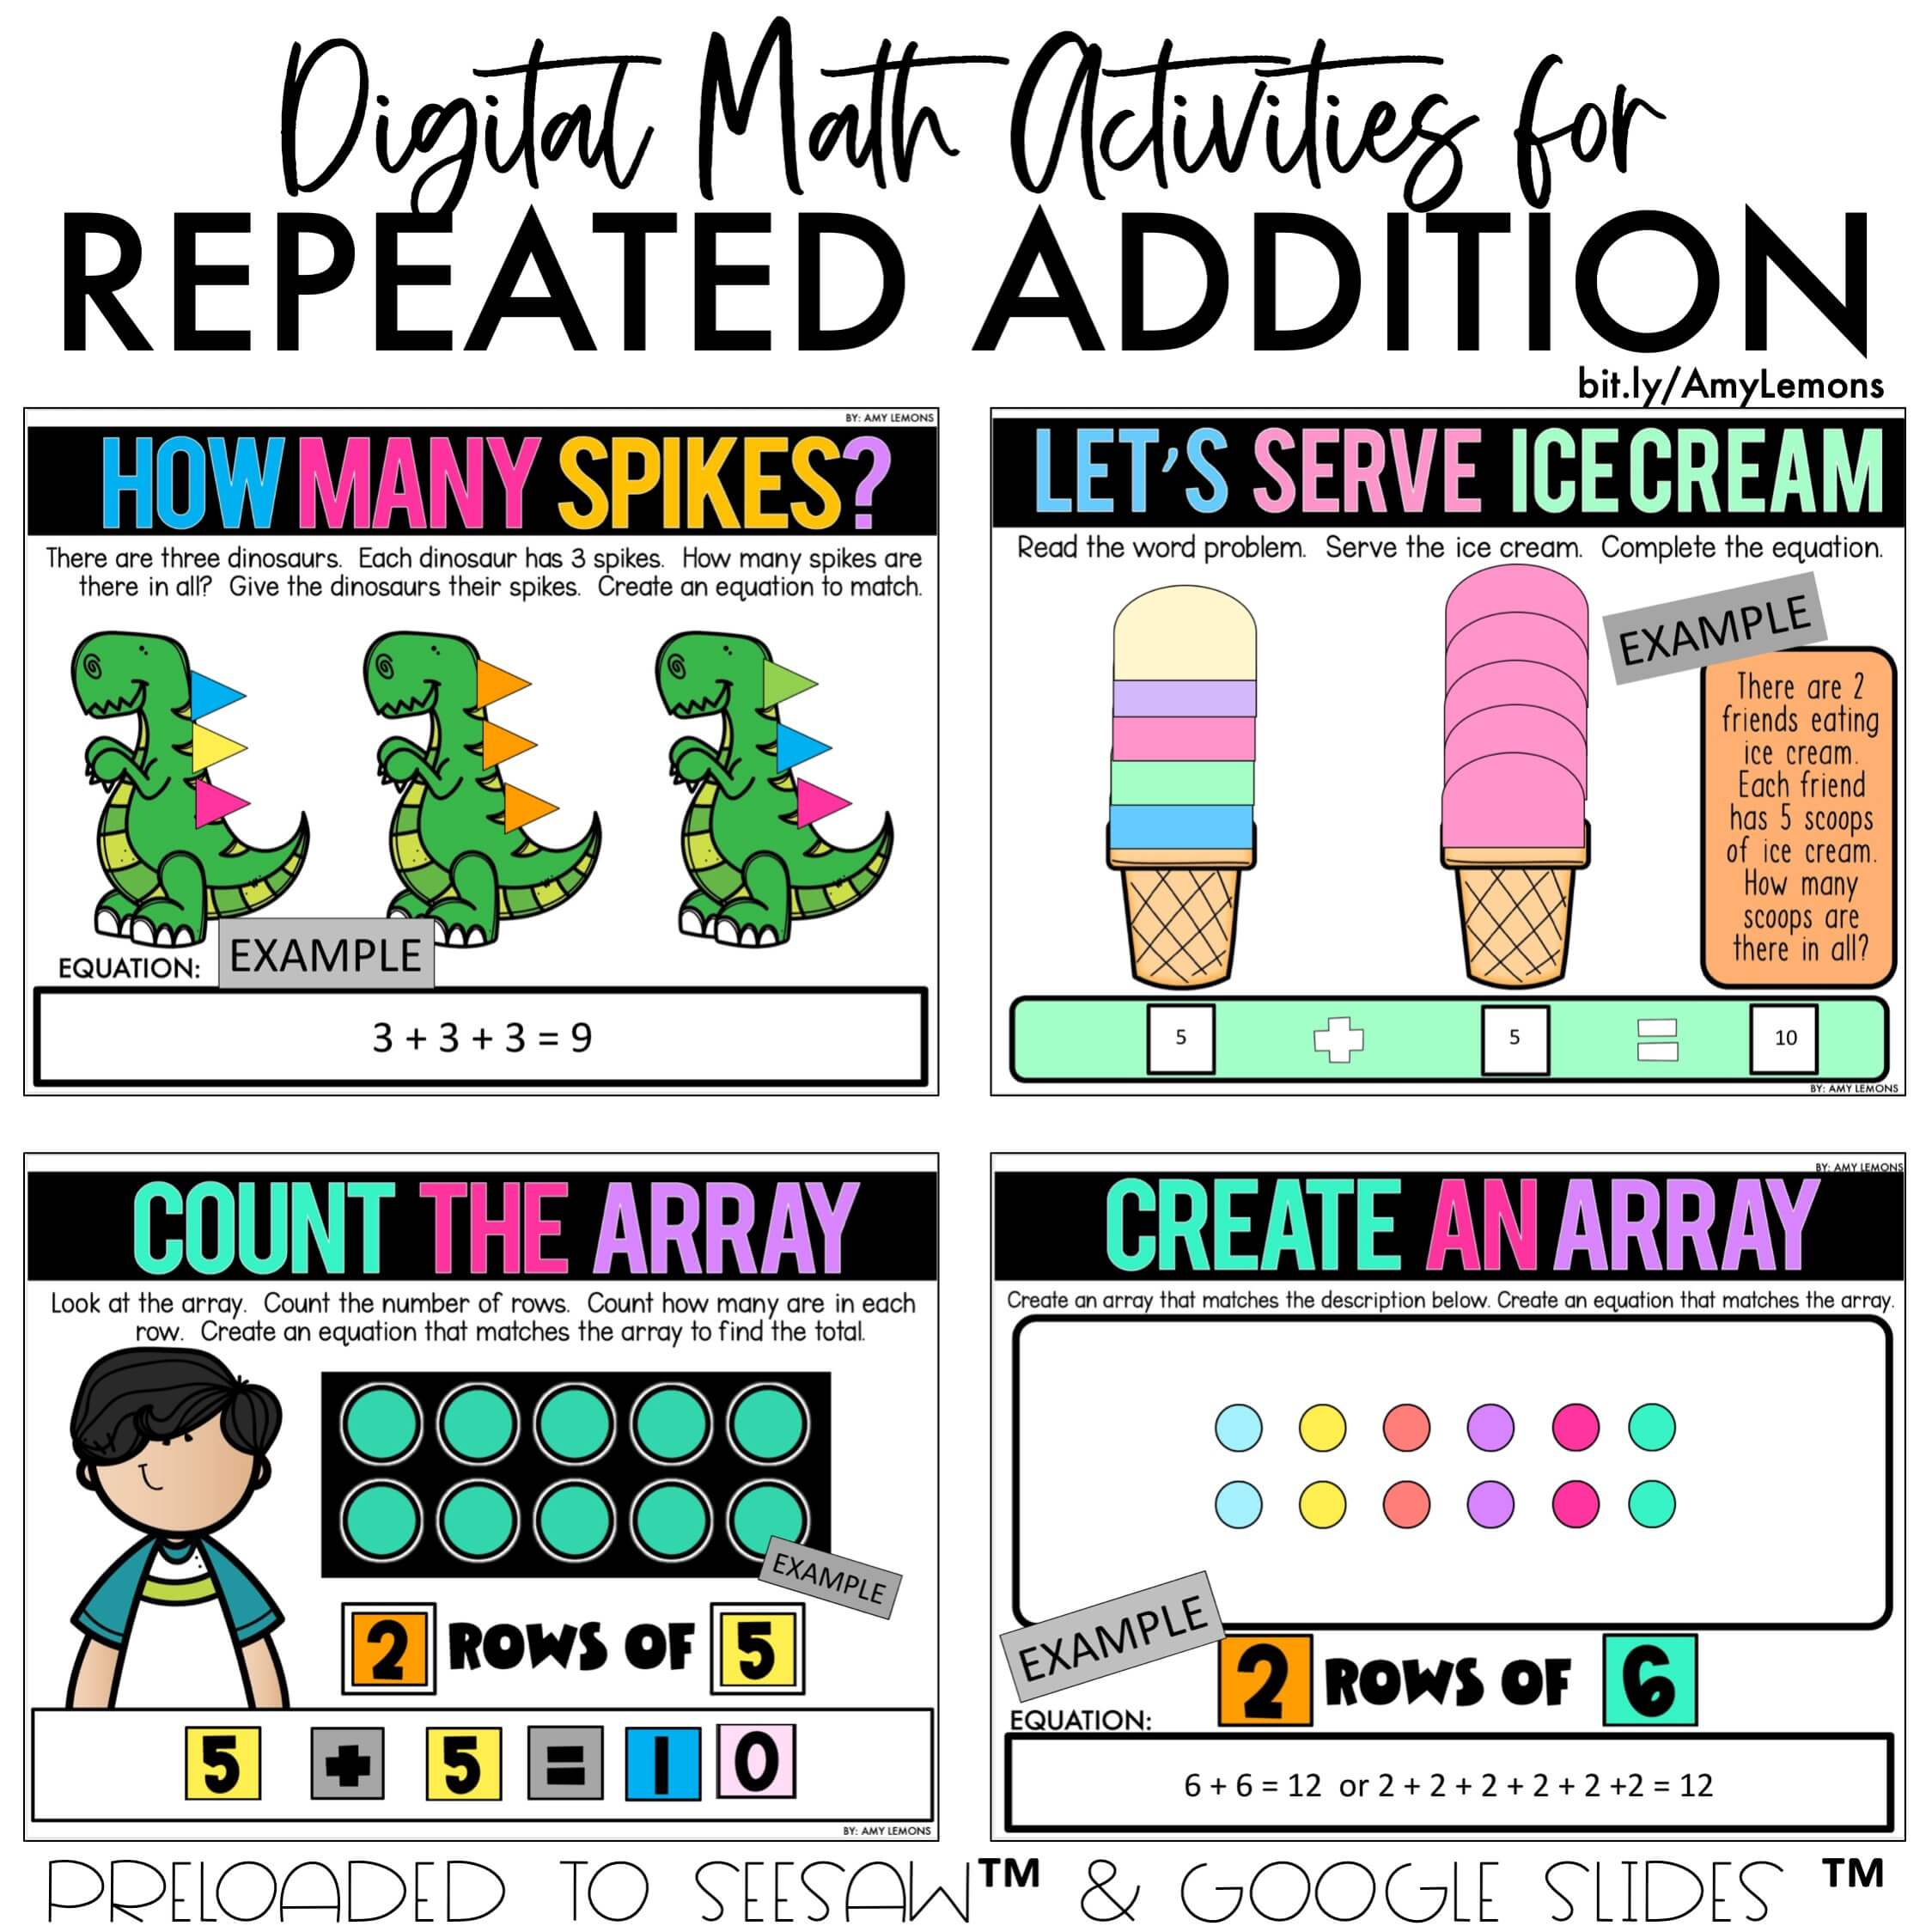 small resolution of Digital Math Activities for Virtual Learning - Amy Lemons